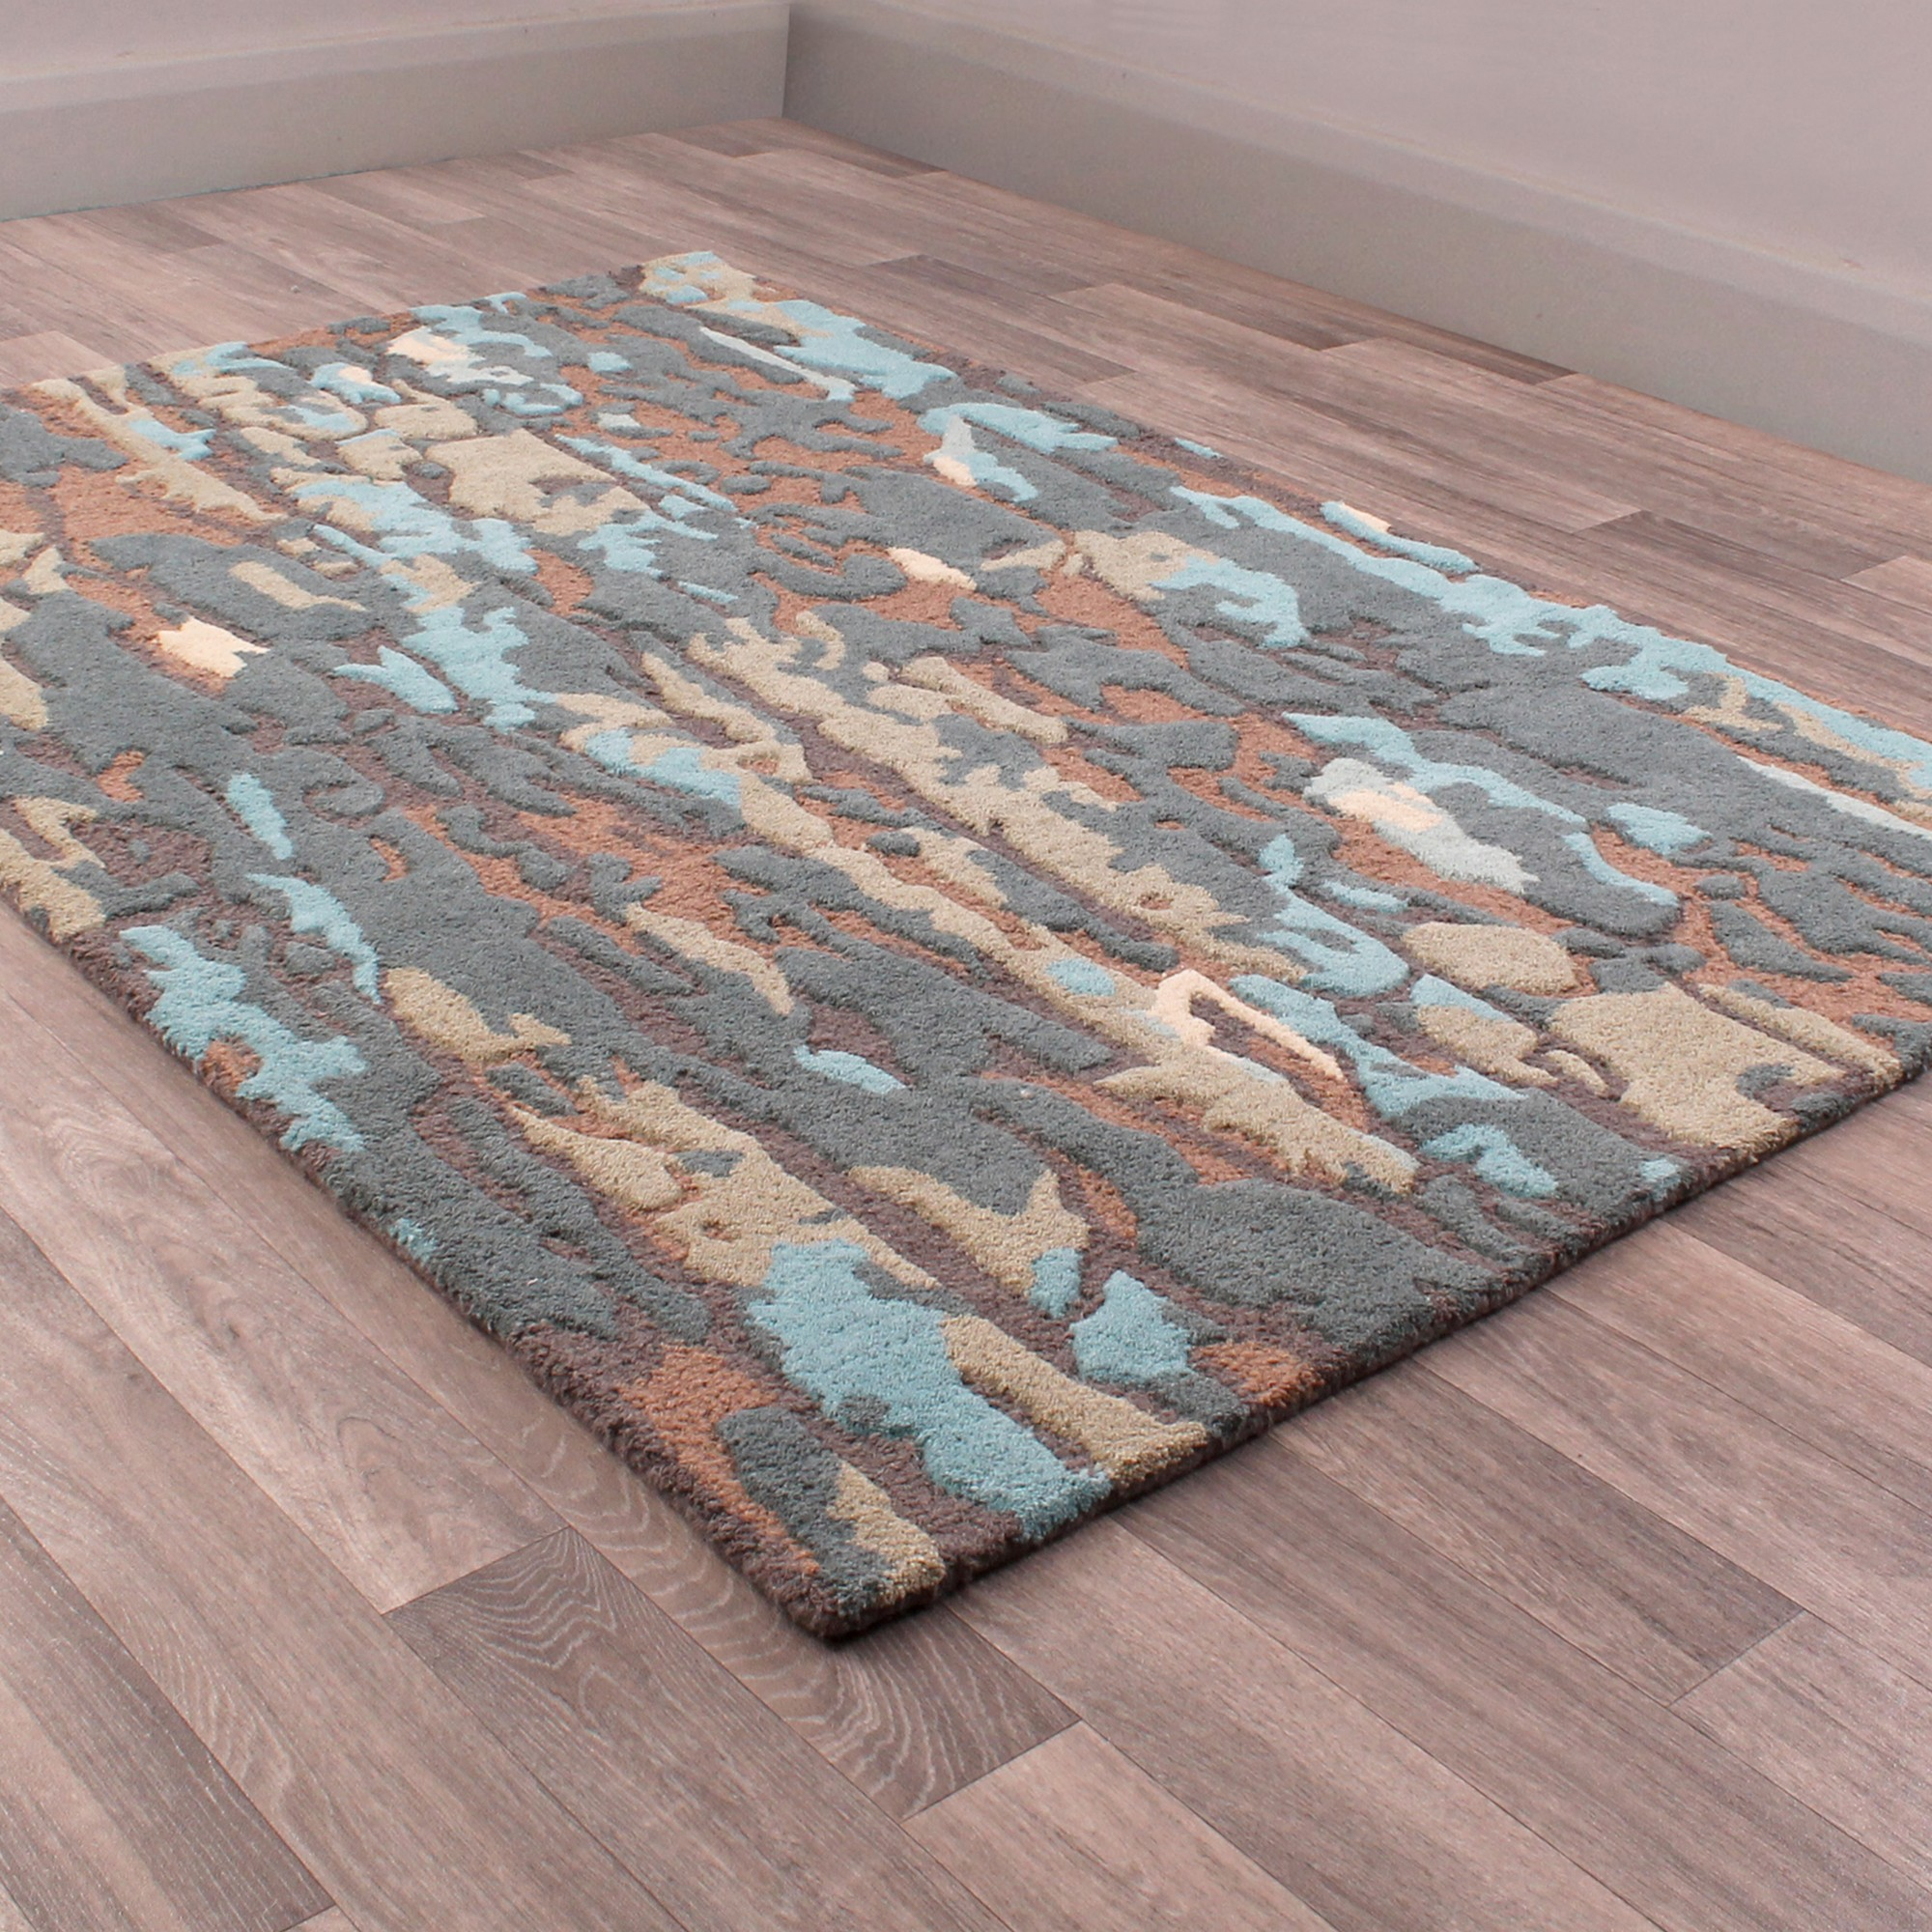 Fusion Atlantic Rugs in Beige and Blue